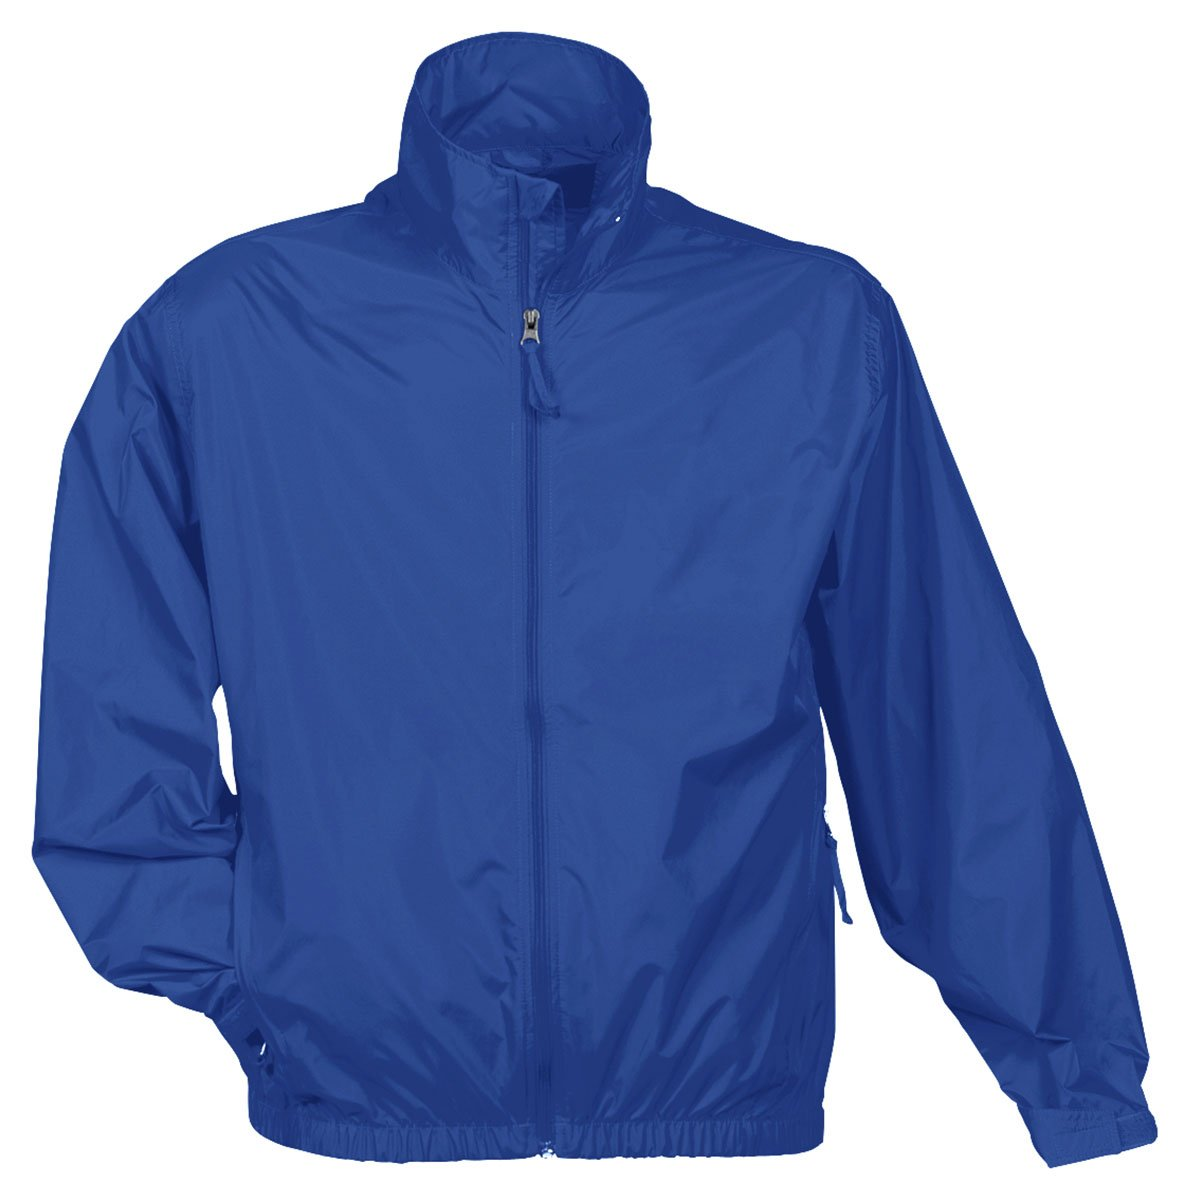 Tri Mountain Men's Lightweight Water Resistant Jacket by Tri-Mountain